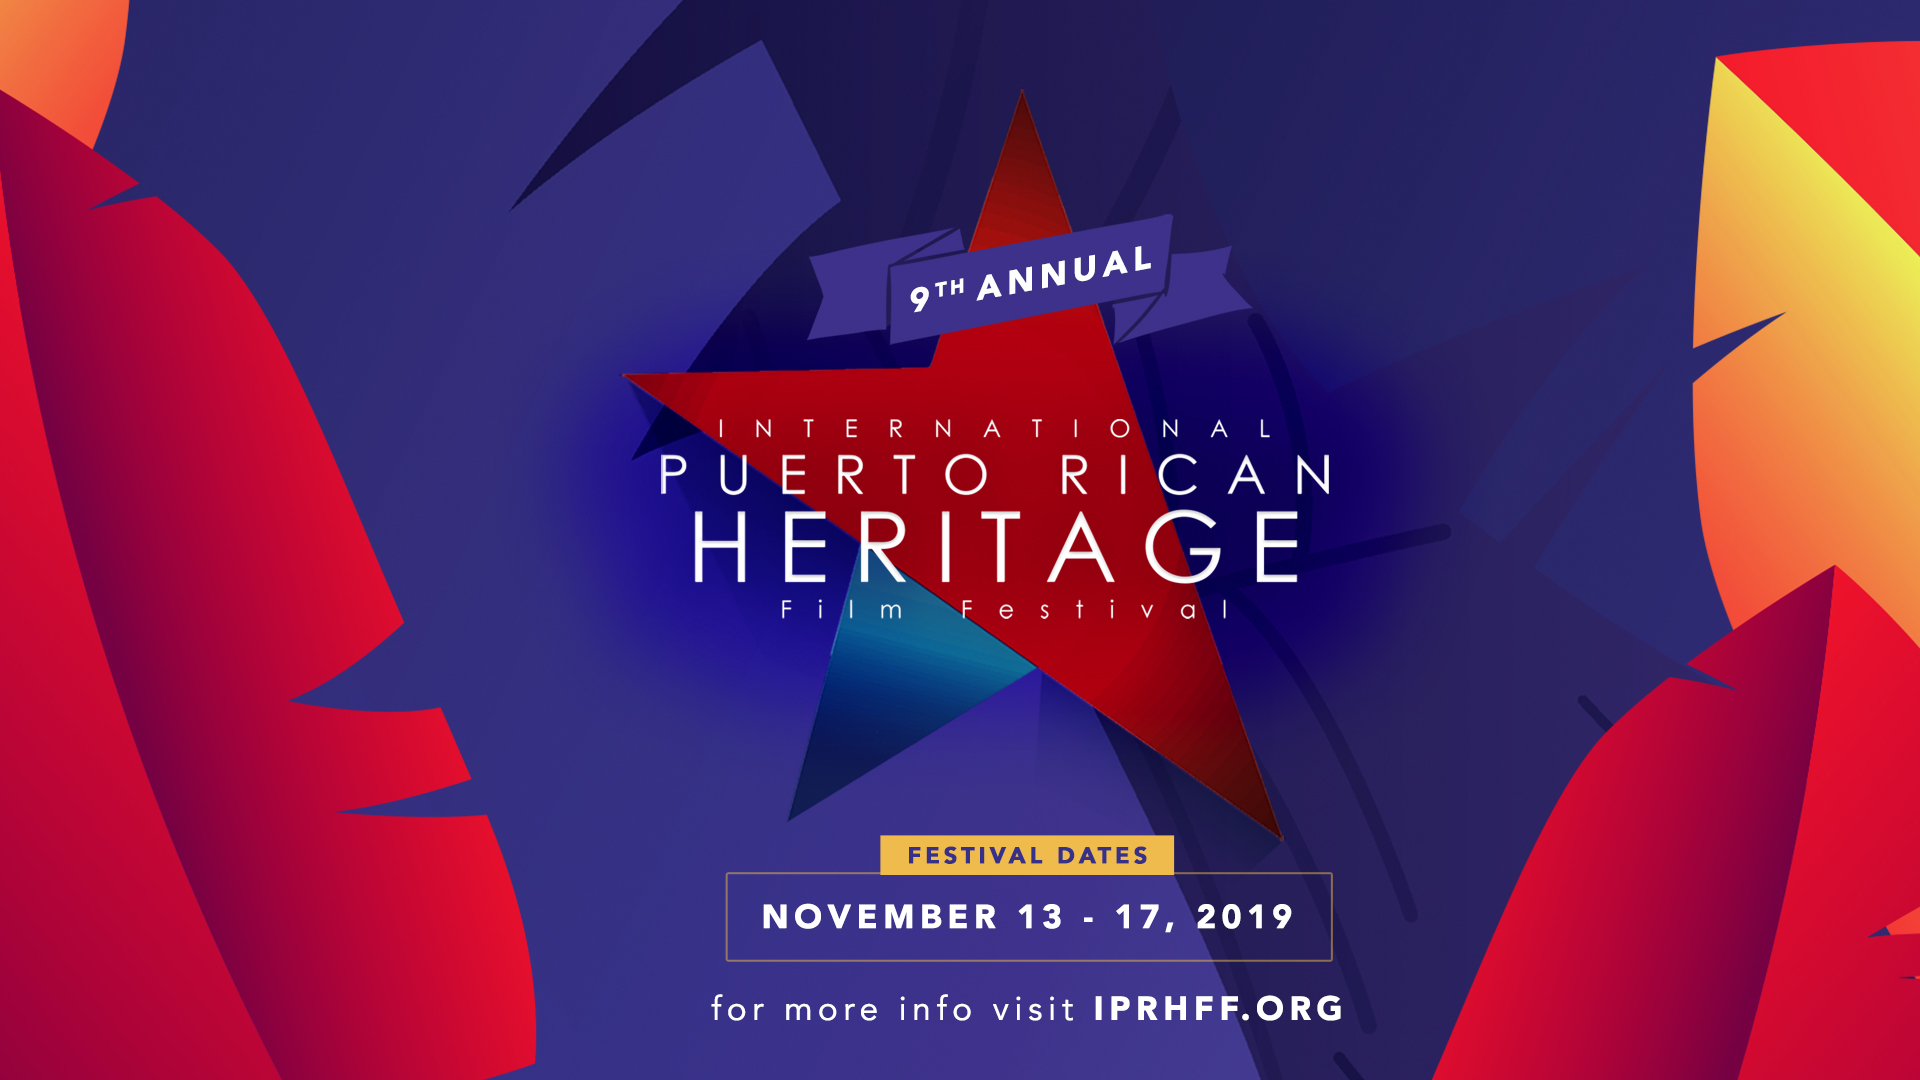 International Puerto Rican Heritage Film Festival 11/17